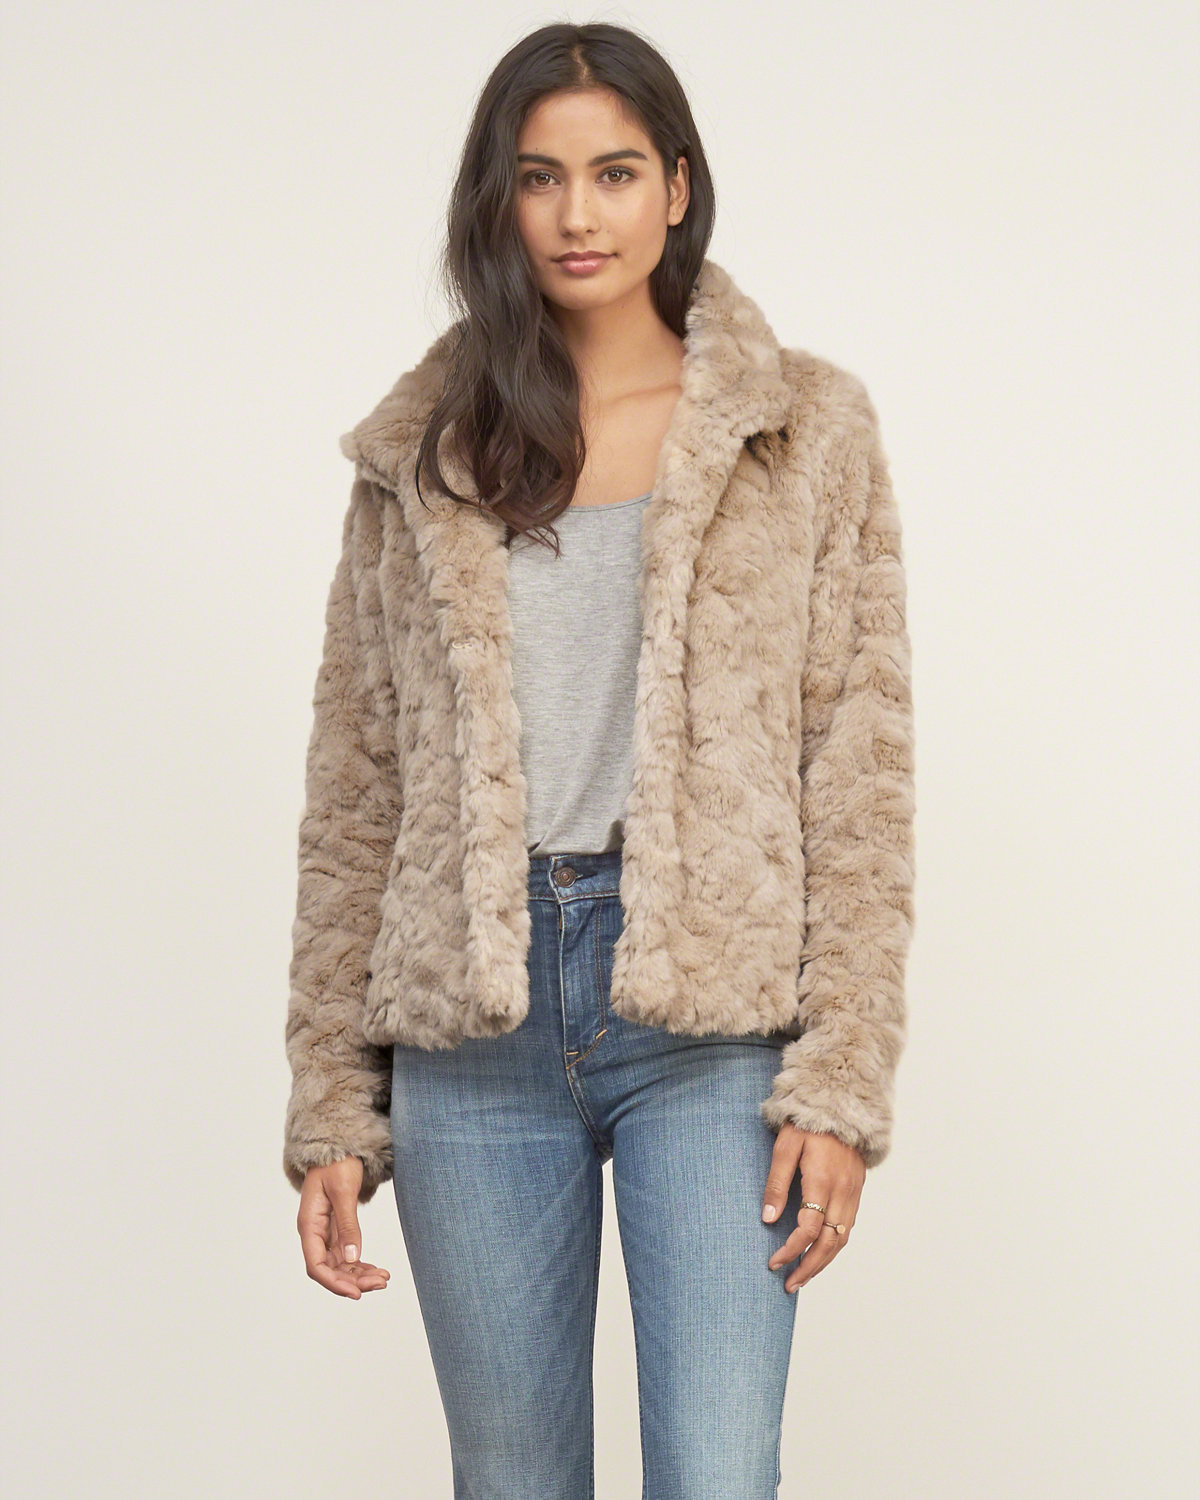 Faux Fur Jackets Archives - Cynthia Hudson Style